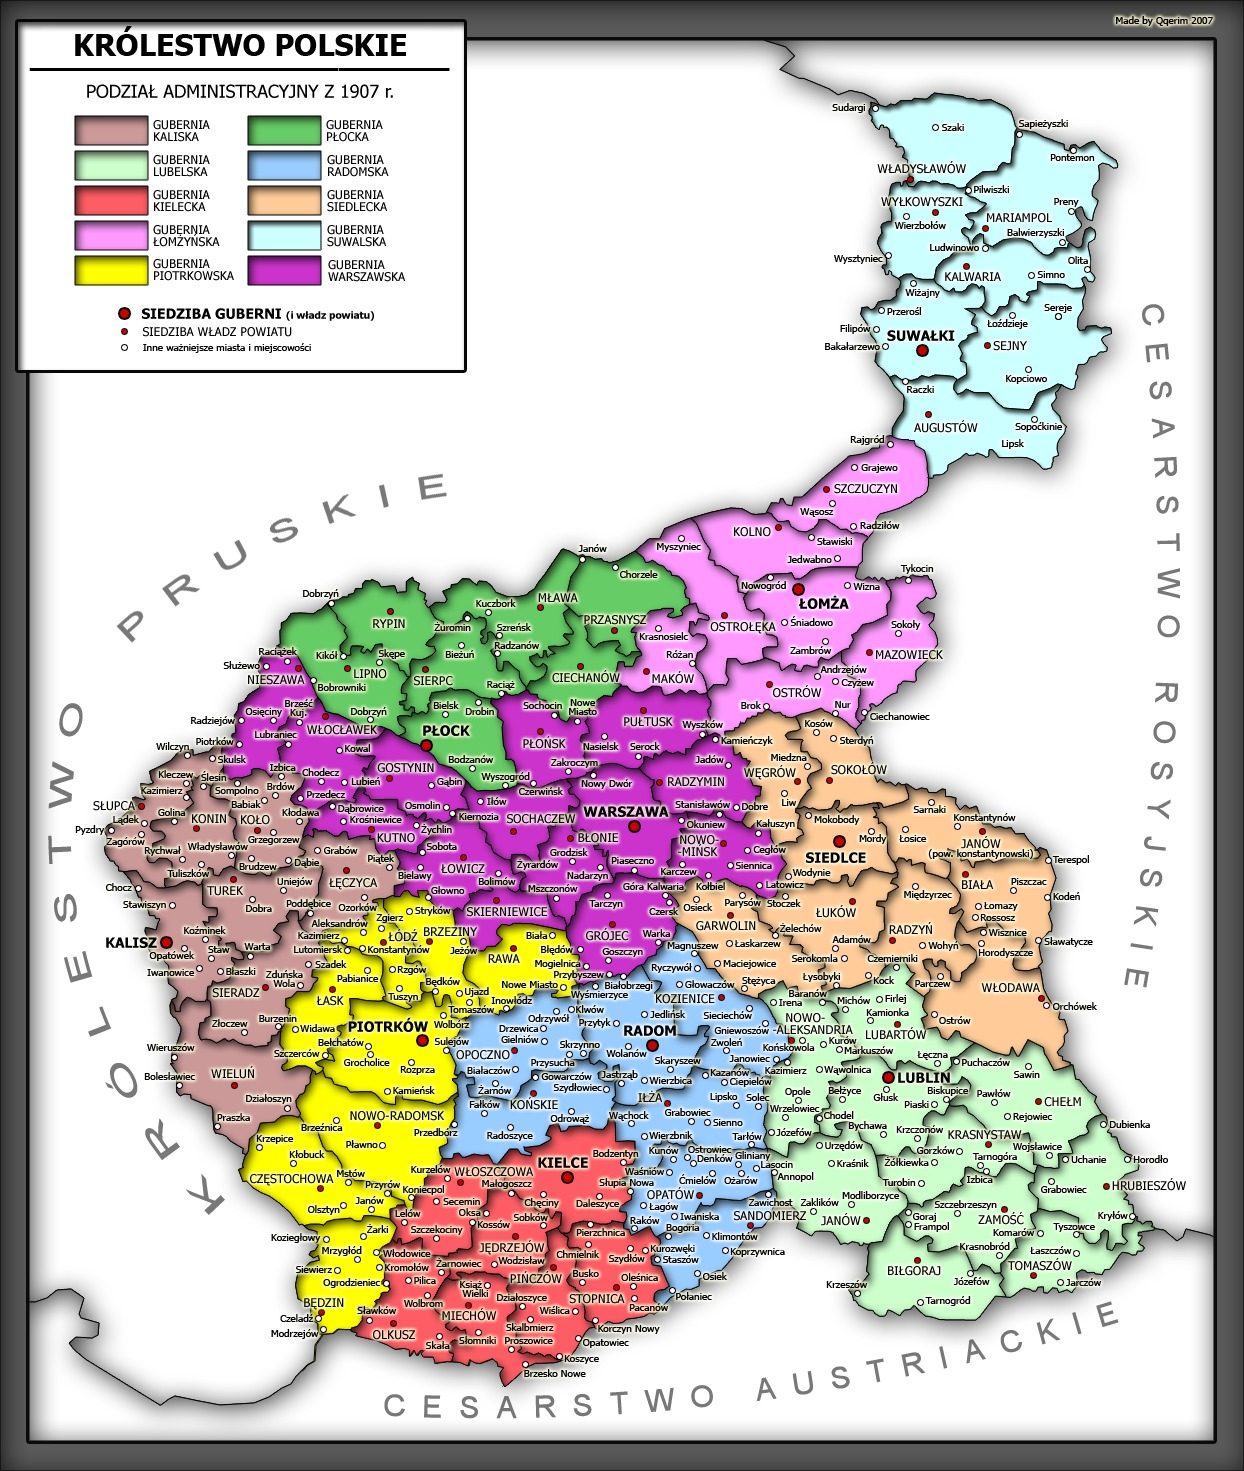 Administrative division of Congress Poland, 1907